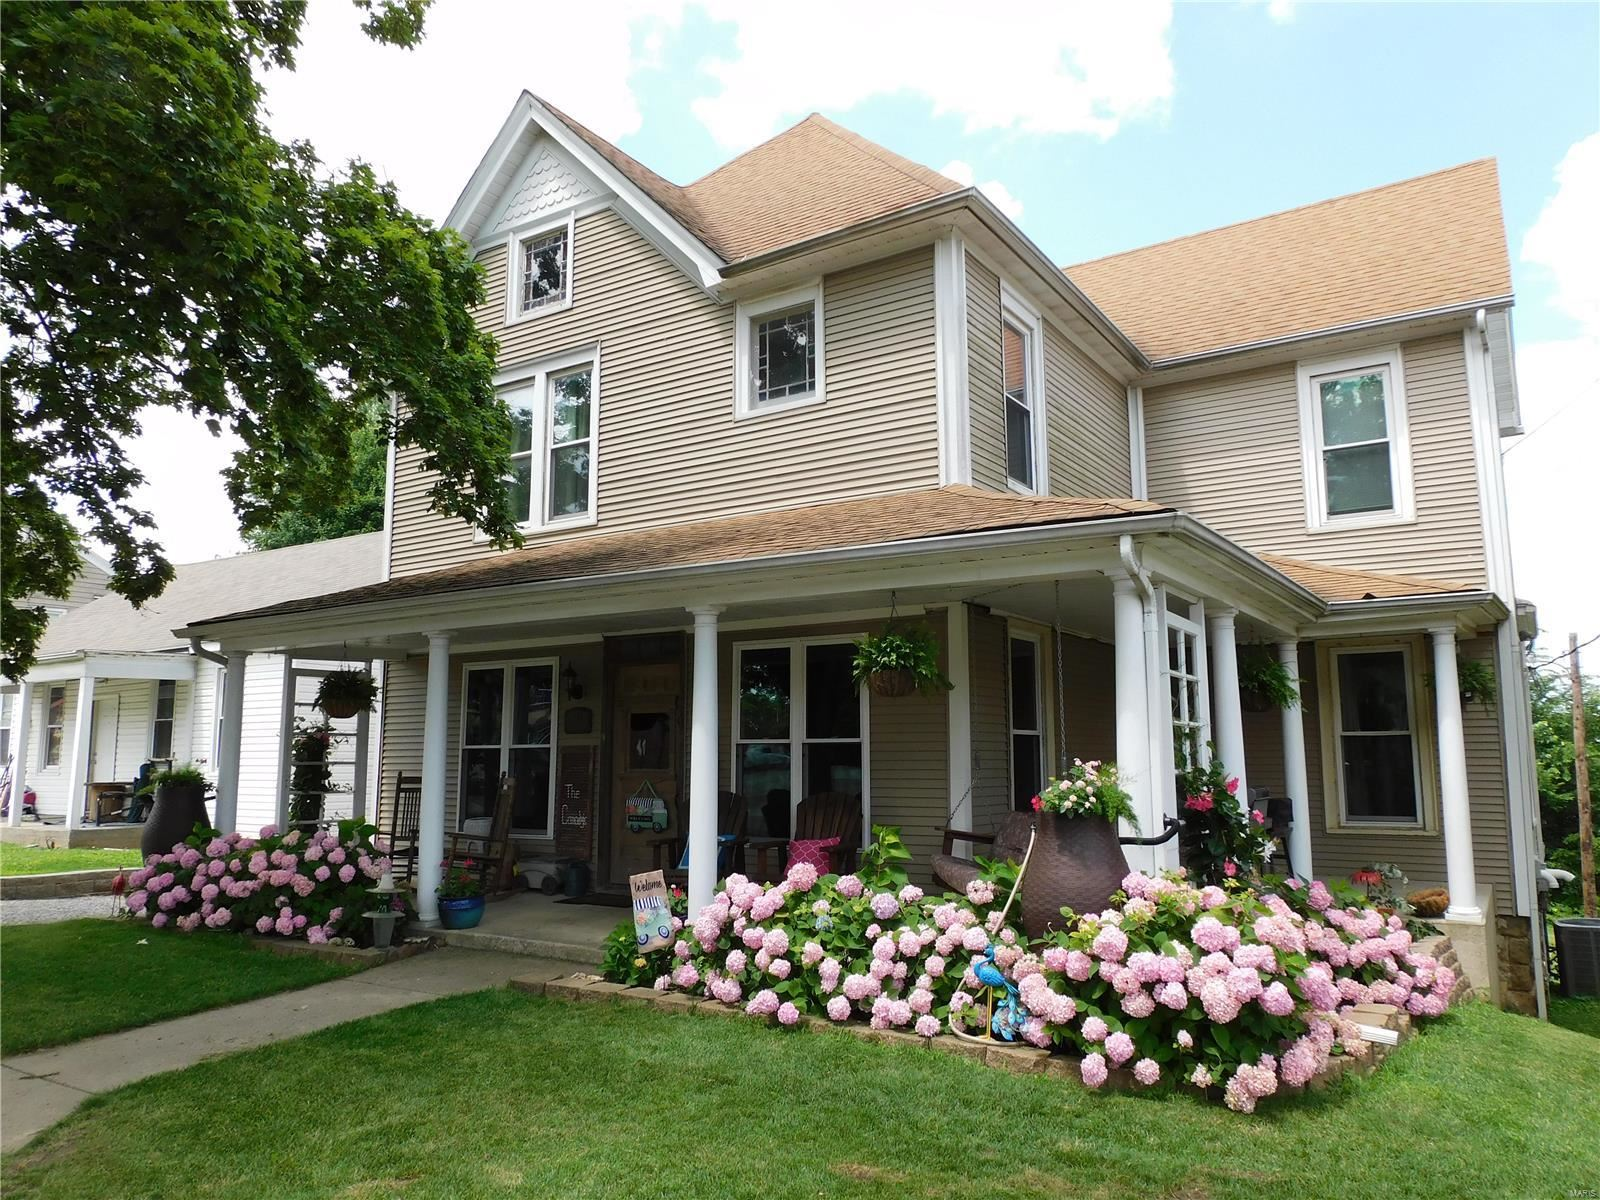 783 State Street, Chester, IL 62233 - MLS#: 21045440